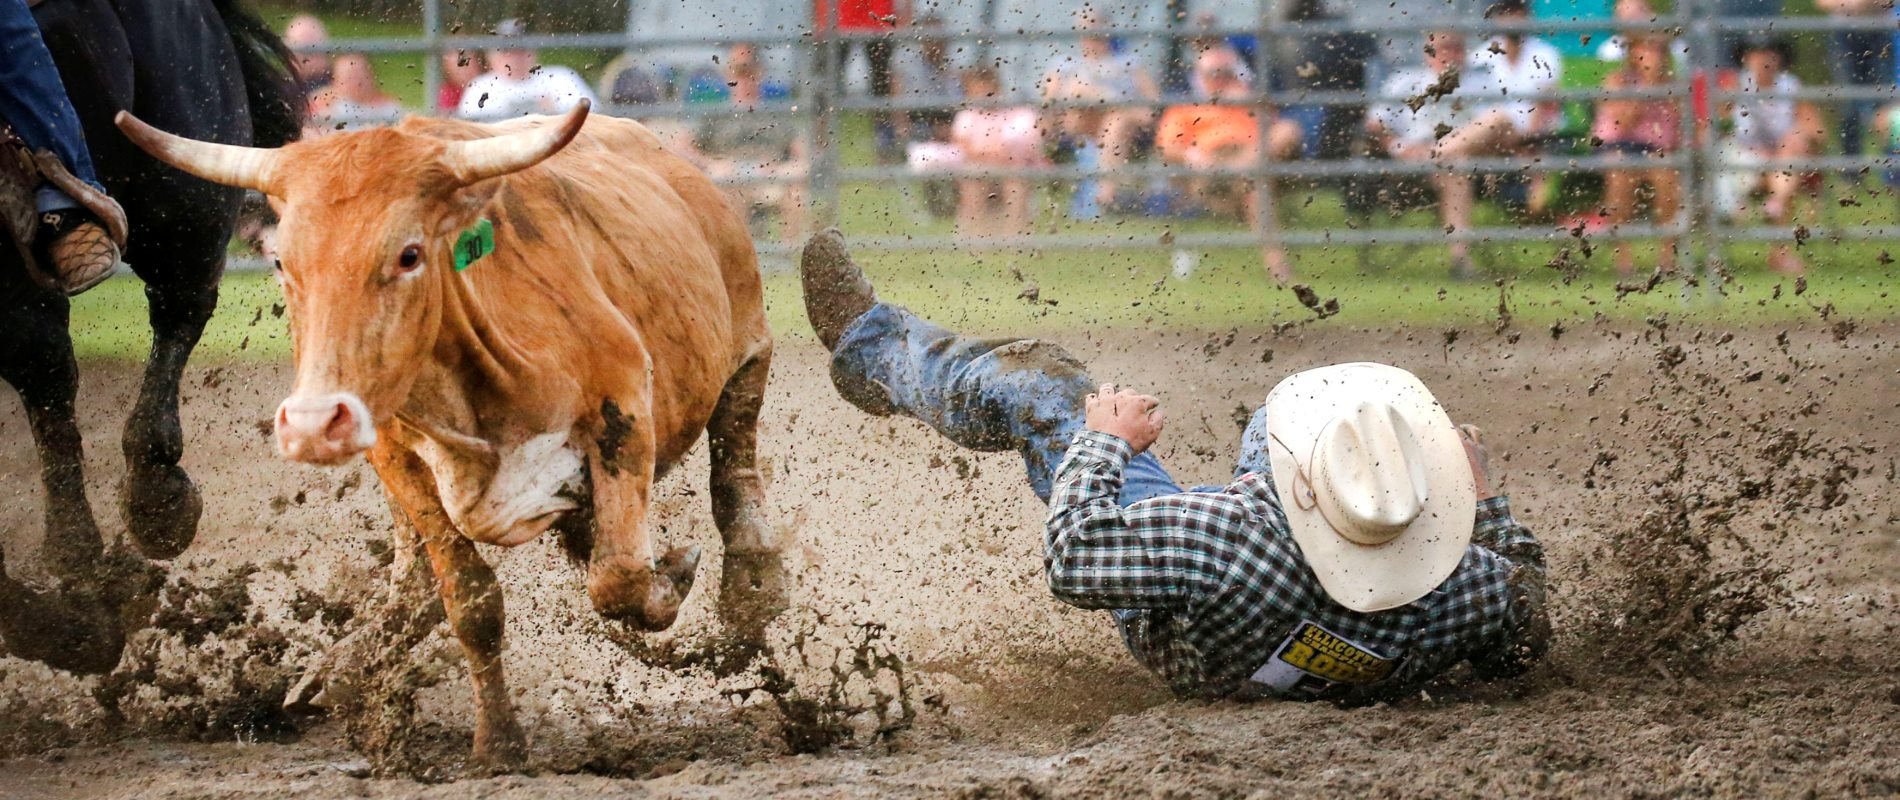 A cowboy falls into the mud after missing a steer at the Ellicottville Rodeo. (Robert Kirkham/Buffalo News)